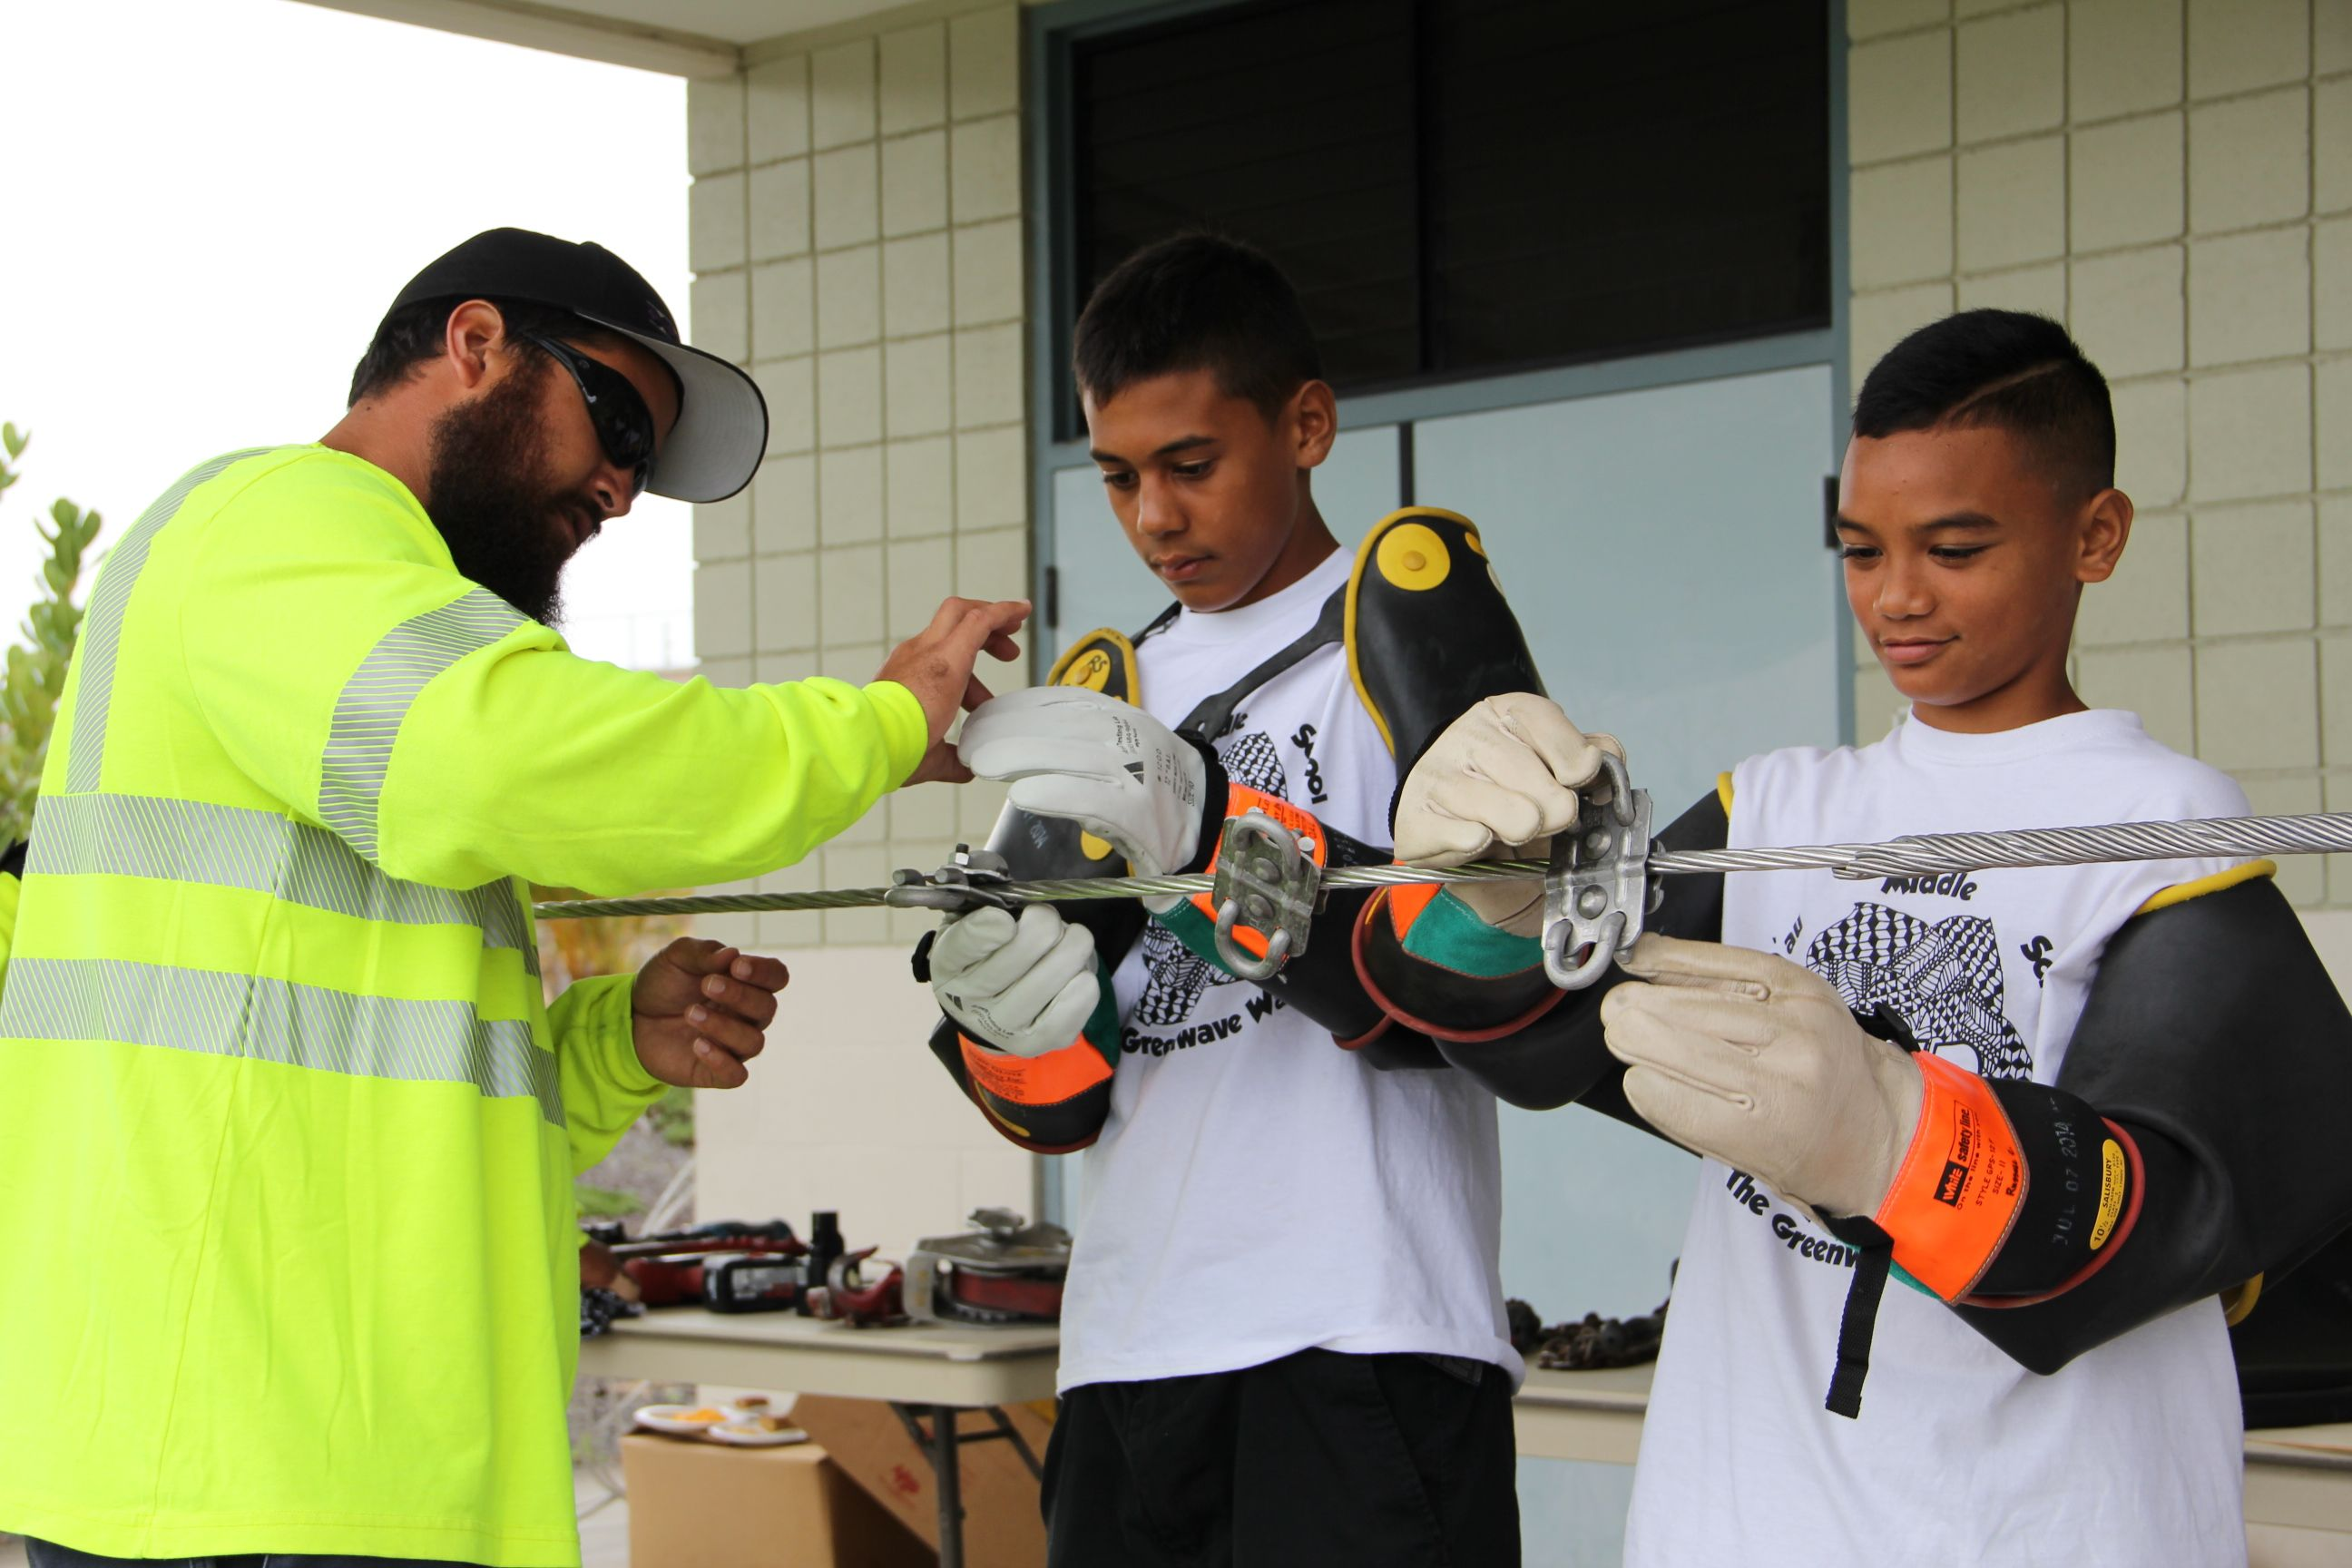 Hawaii Electric Light employees help students try on PPE